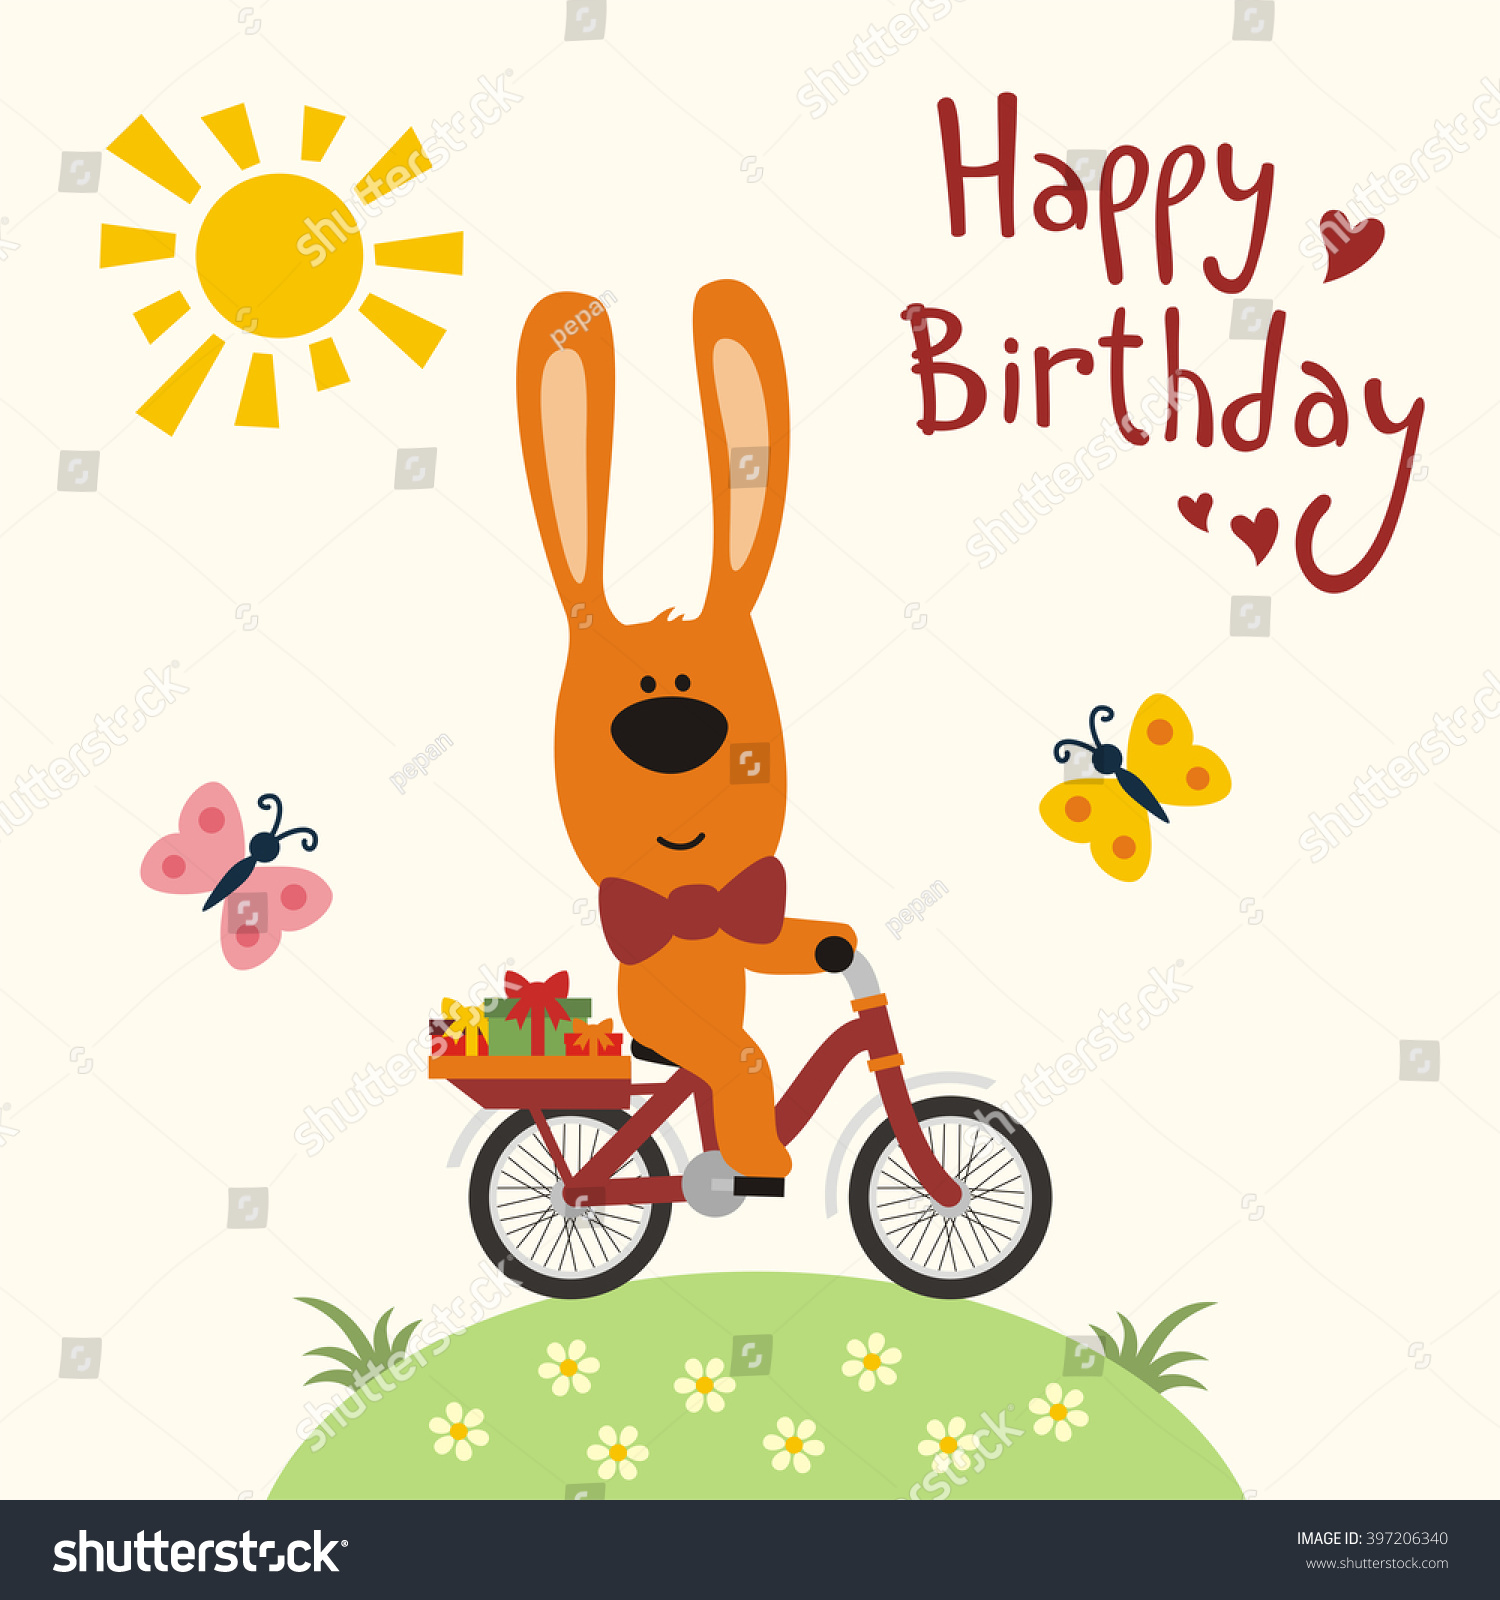 Stock Vector Happy Birthday Funny Rabbit On Bicycle With Gifts Butterflies Sun Greeting Card Jpg 1500x1600